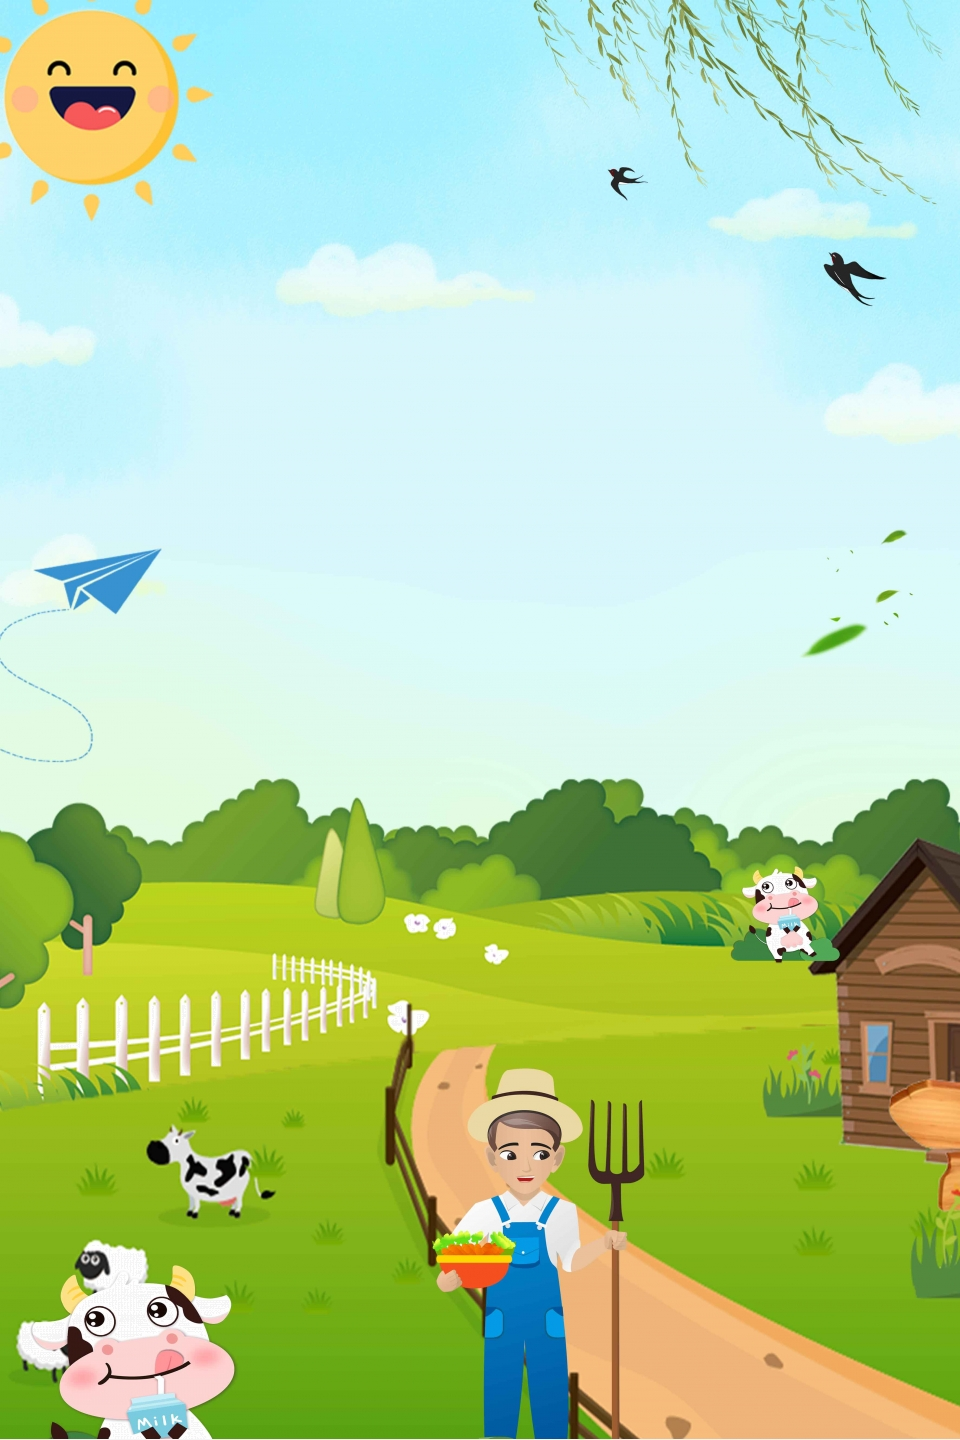 Simple Cartoon Farm Advertisement Simplicity Cartoon Farm Background Image For Free Download Some trees can live up to several drawing trees might not seem so difficult at first. https pngtree com freebackground simple cartoon farm advertisement 1015328 html